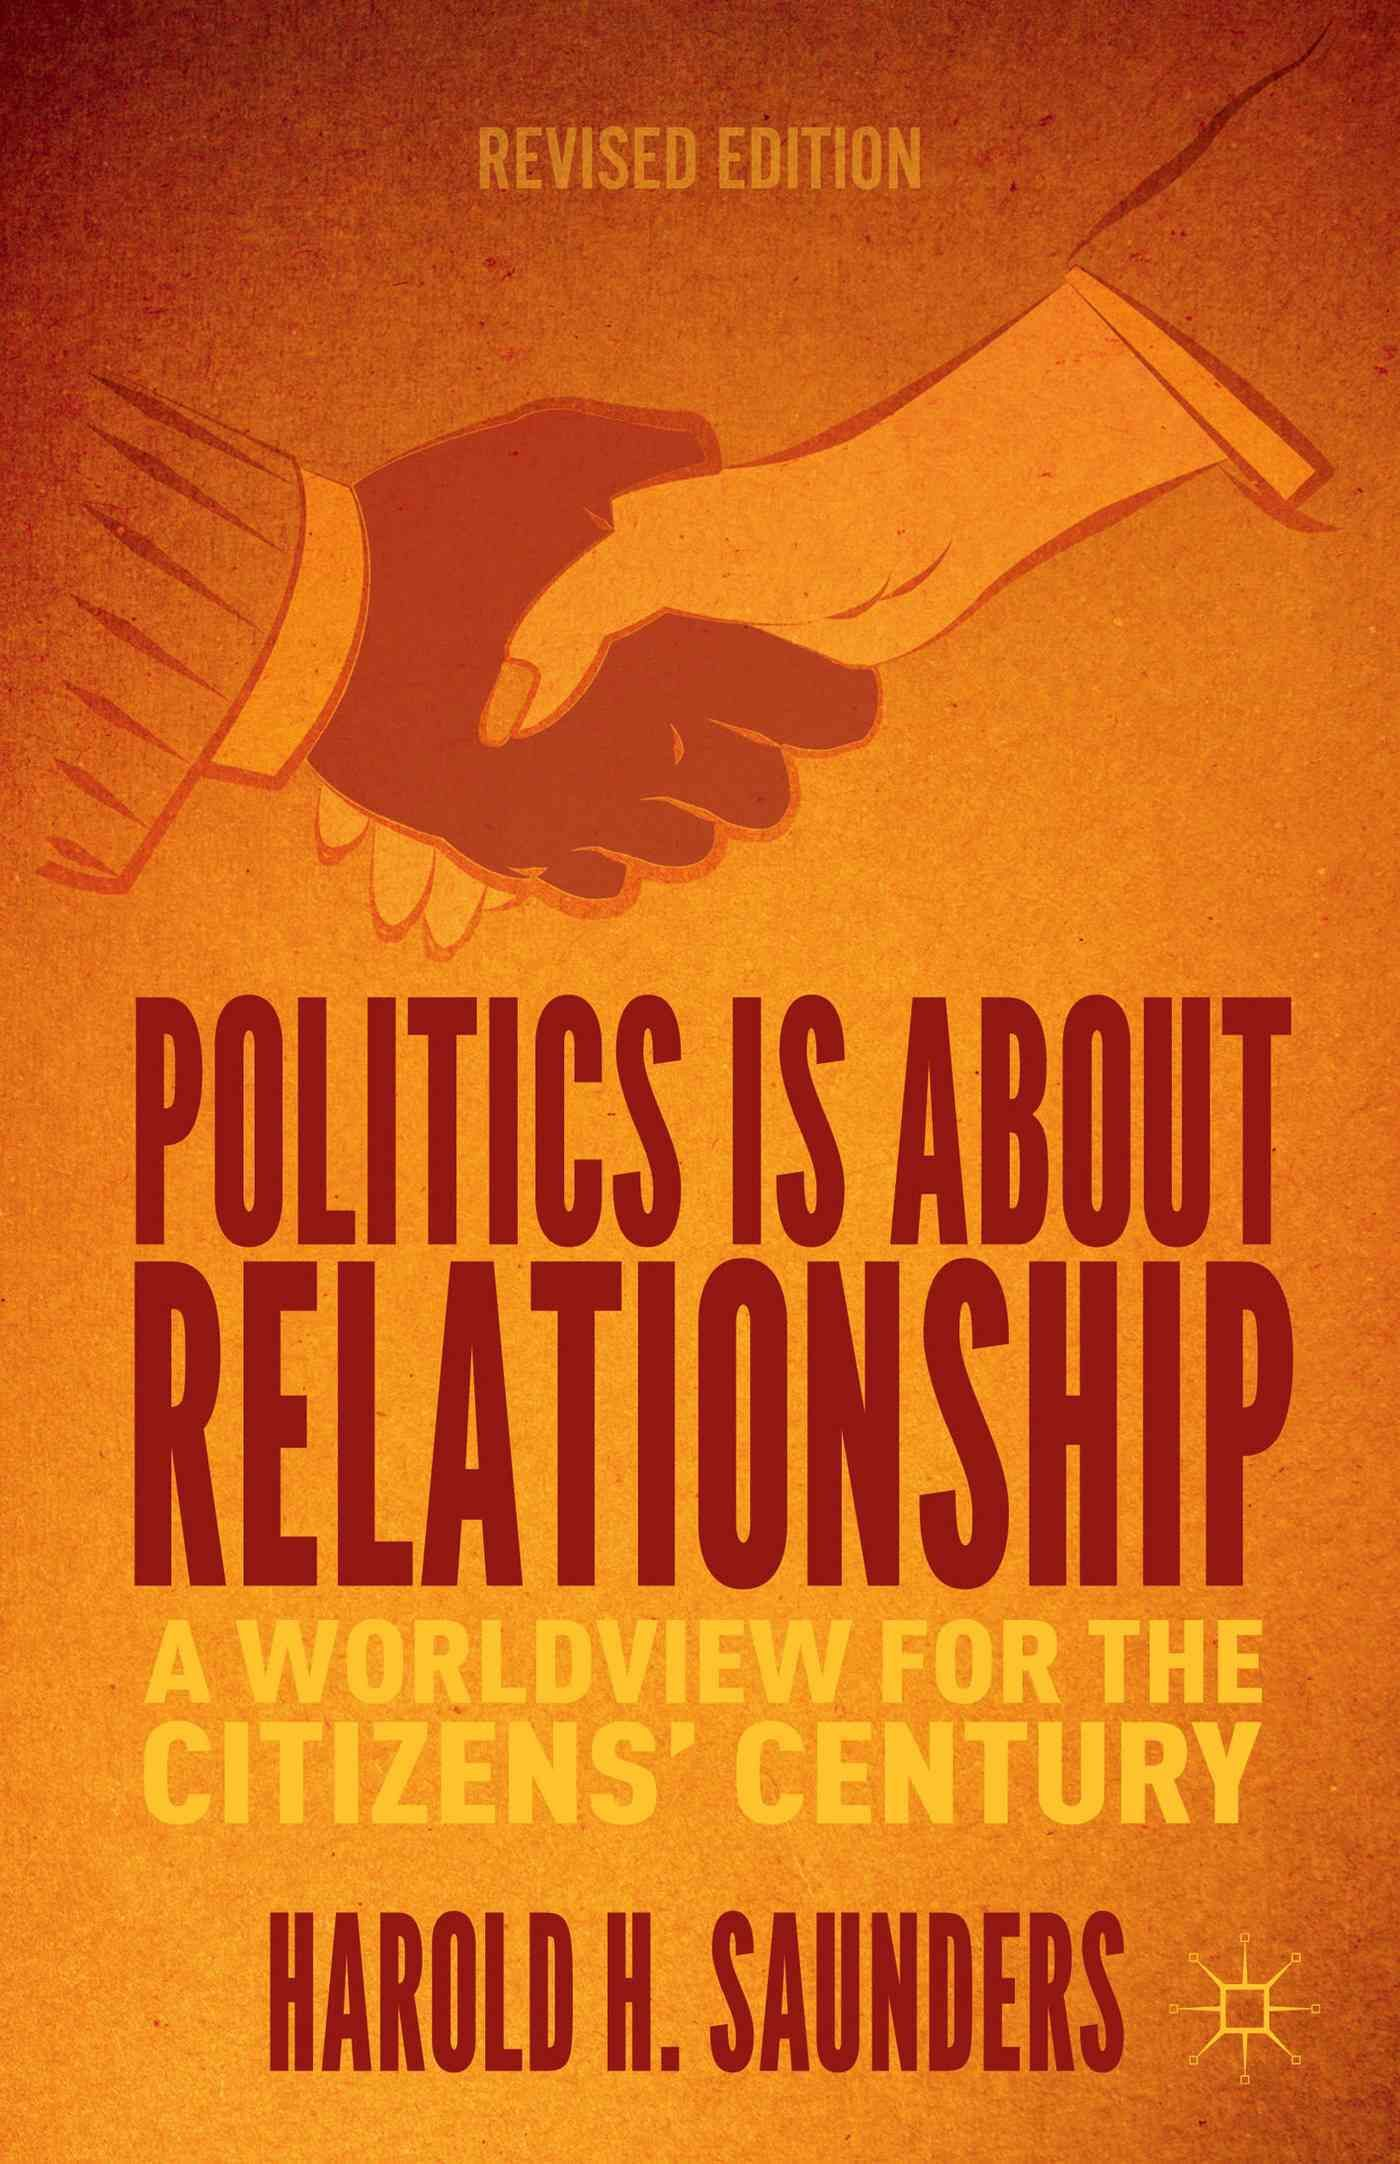 Politics Is About Relationship: A Worldview for the Citizens' Century